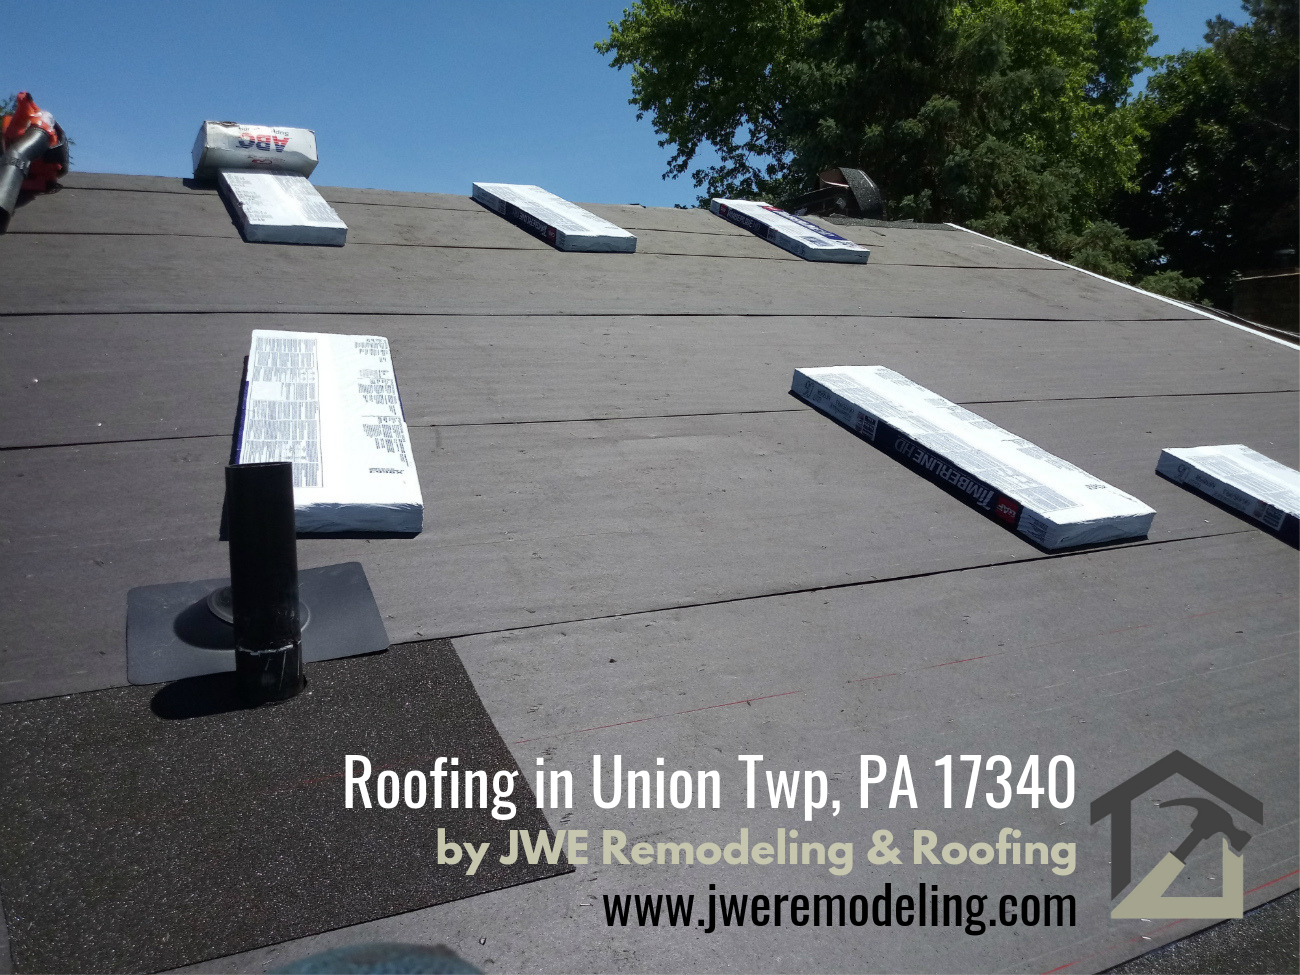 Roofing Company in Union Twp Littlestown PA 17340 JWE roof replacement expert